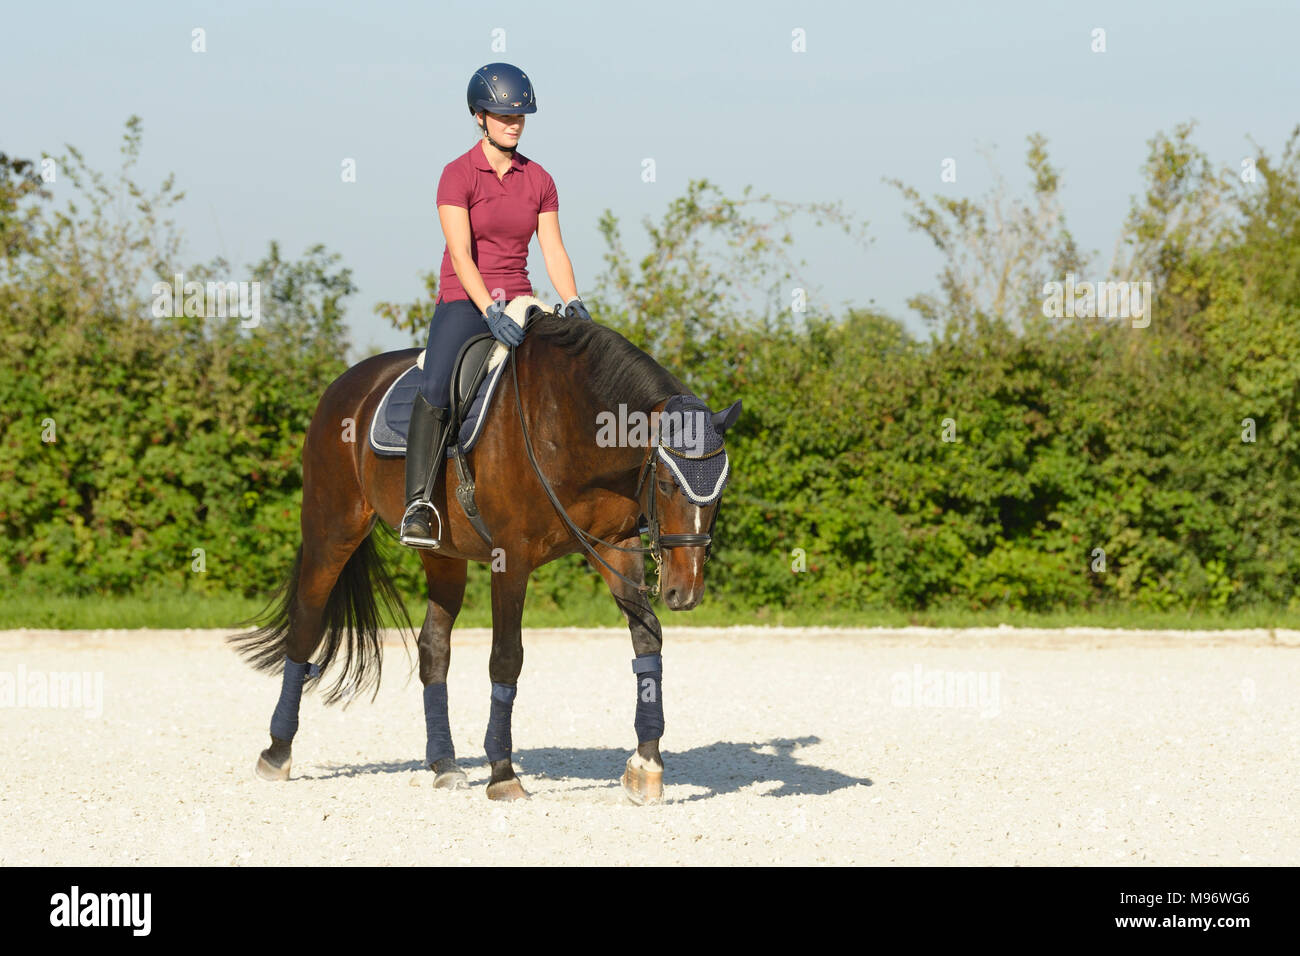 Dressage riding, walking with long reins - Stock Image